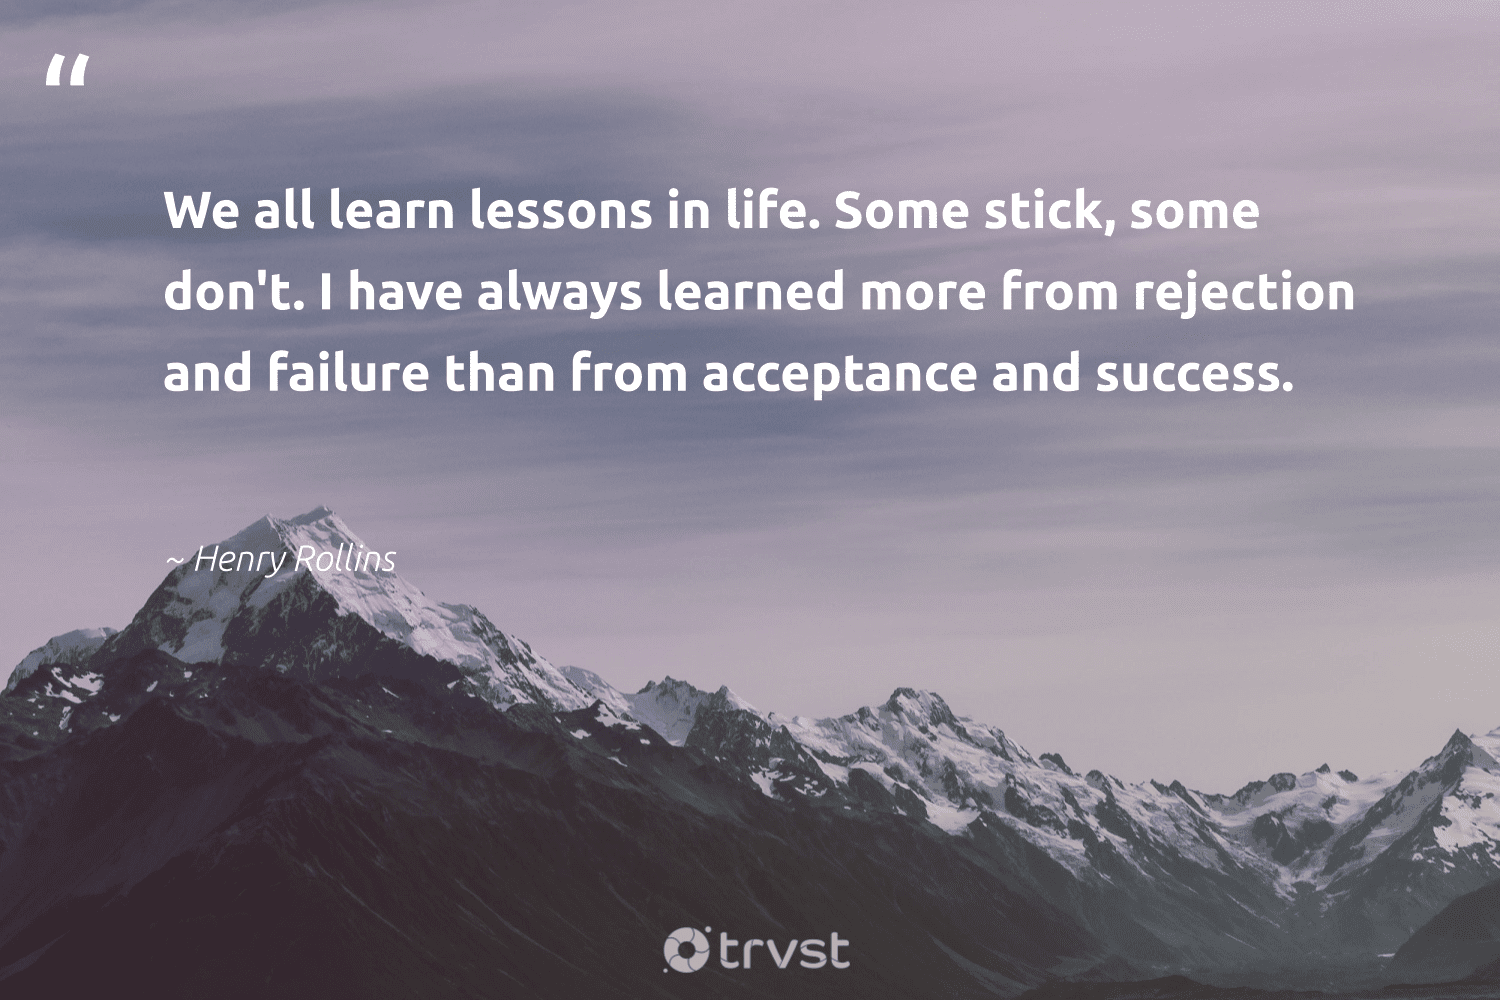 """""""We all learn lessons in life. Some stick, some don't. I have always learned more from rejection and failure than from acceptance and success.""""  - Henry Rollins #trvst #quotes #success #mostwontiwill #deliver #softskills #changetheworld #productivity #successmindset #futureofwork #beinspired #timemanagement"""